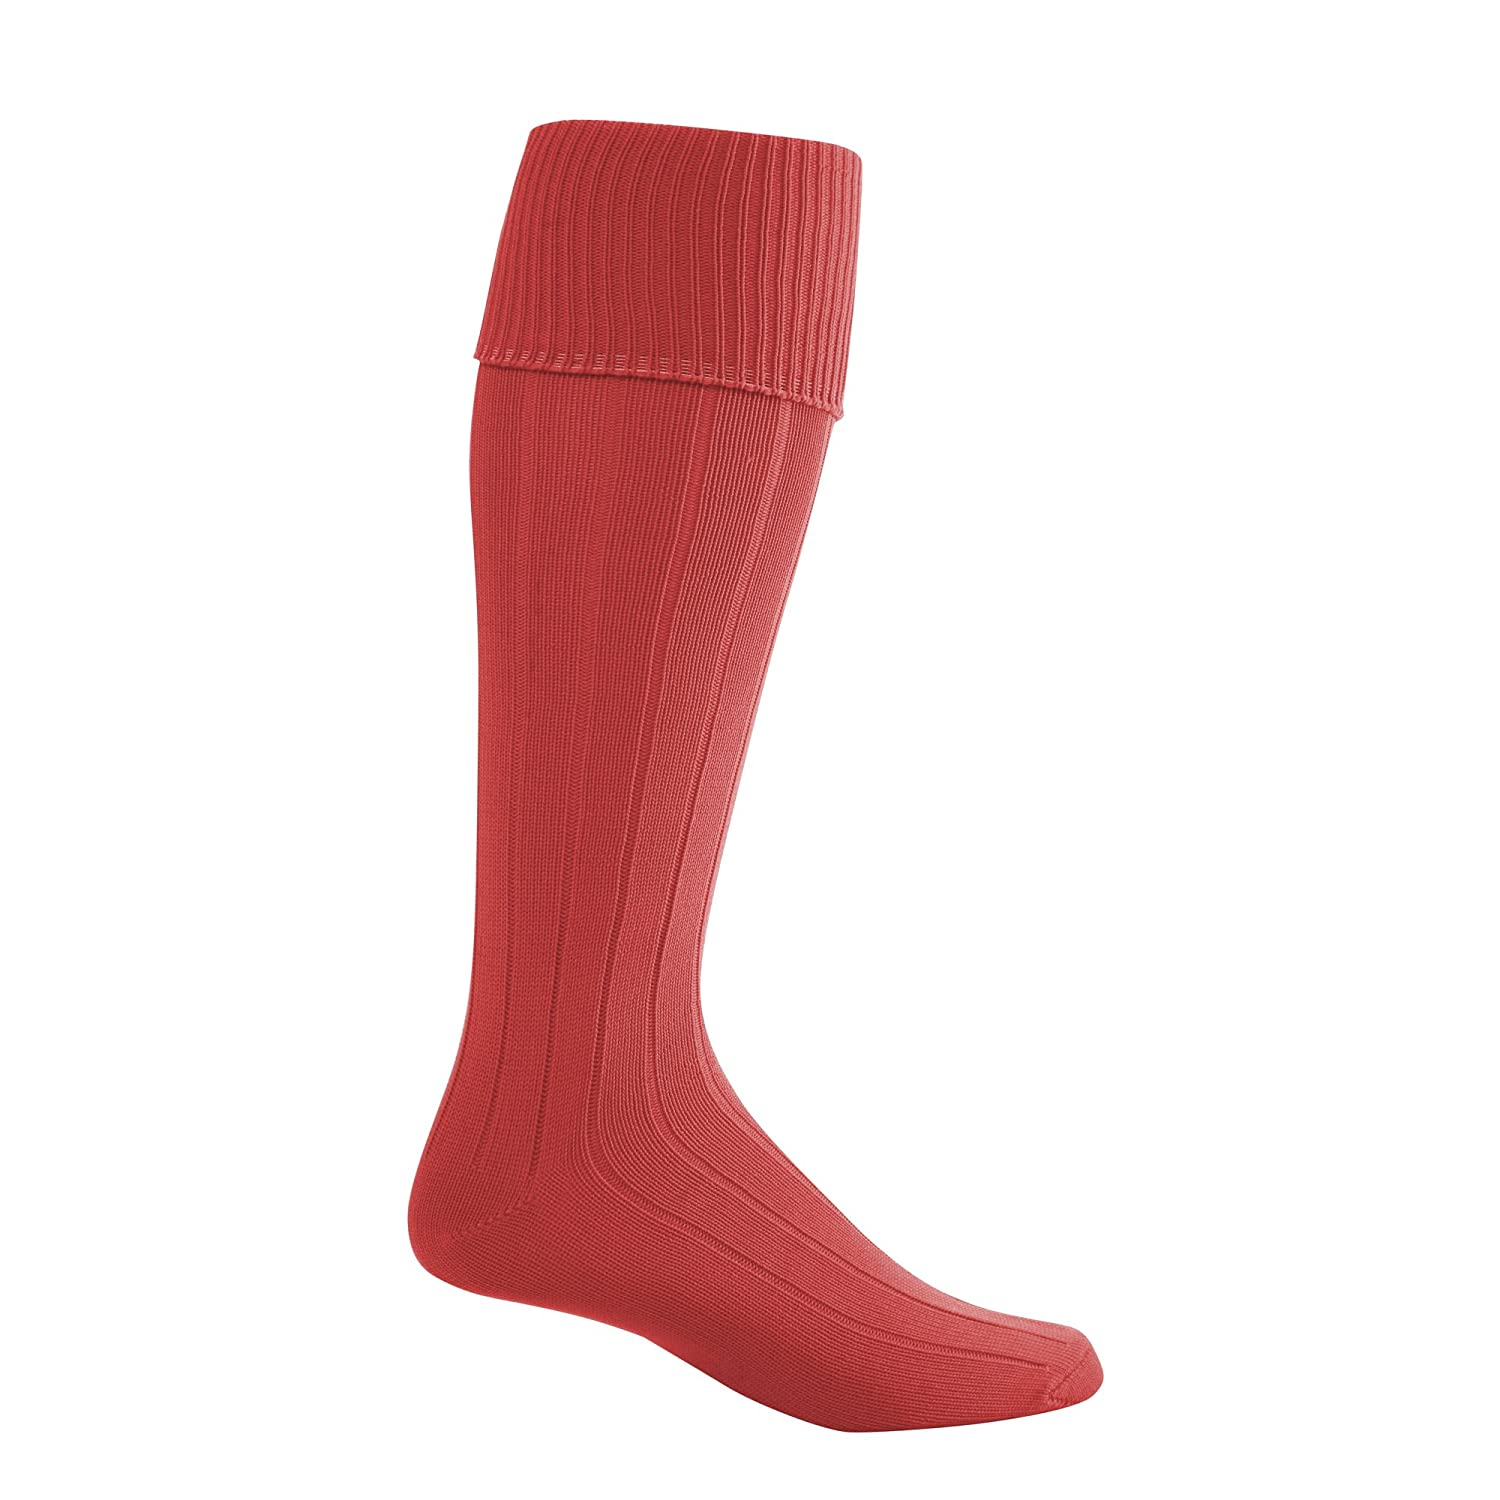 Mens Plain Football/Rugby/Hockey Socks